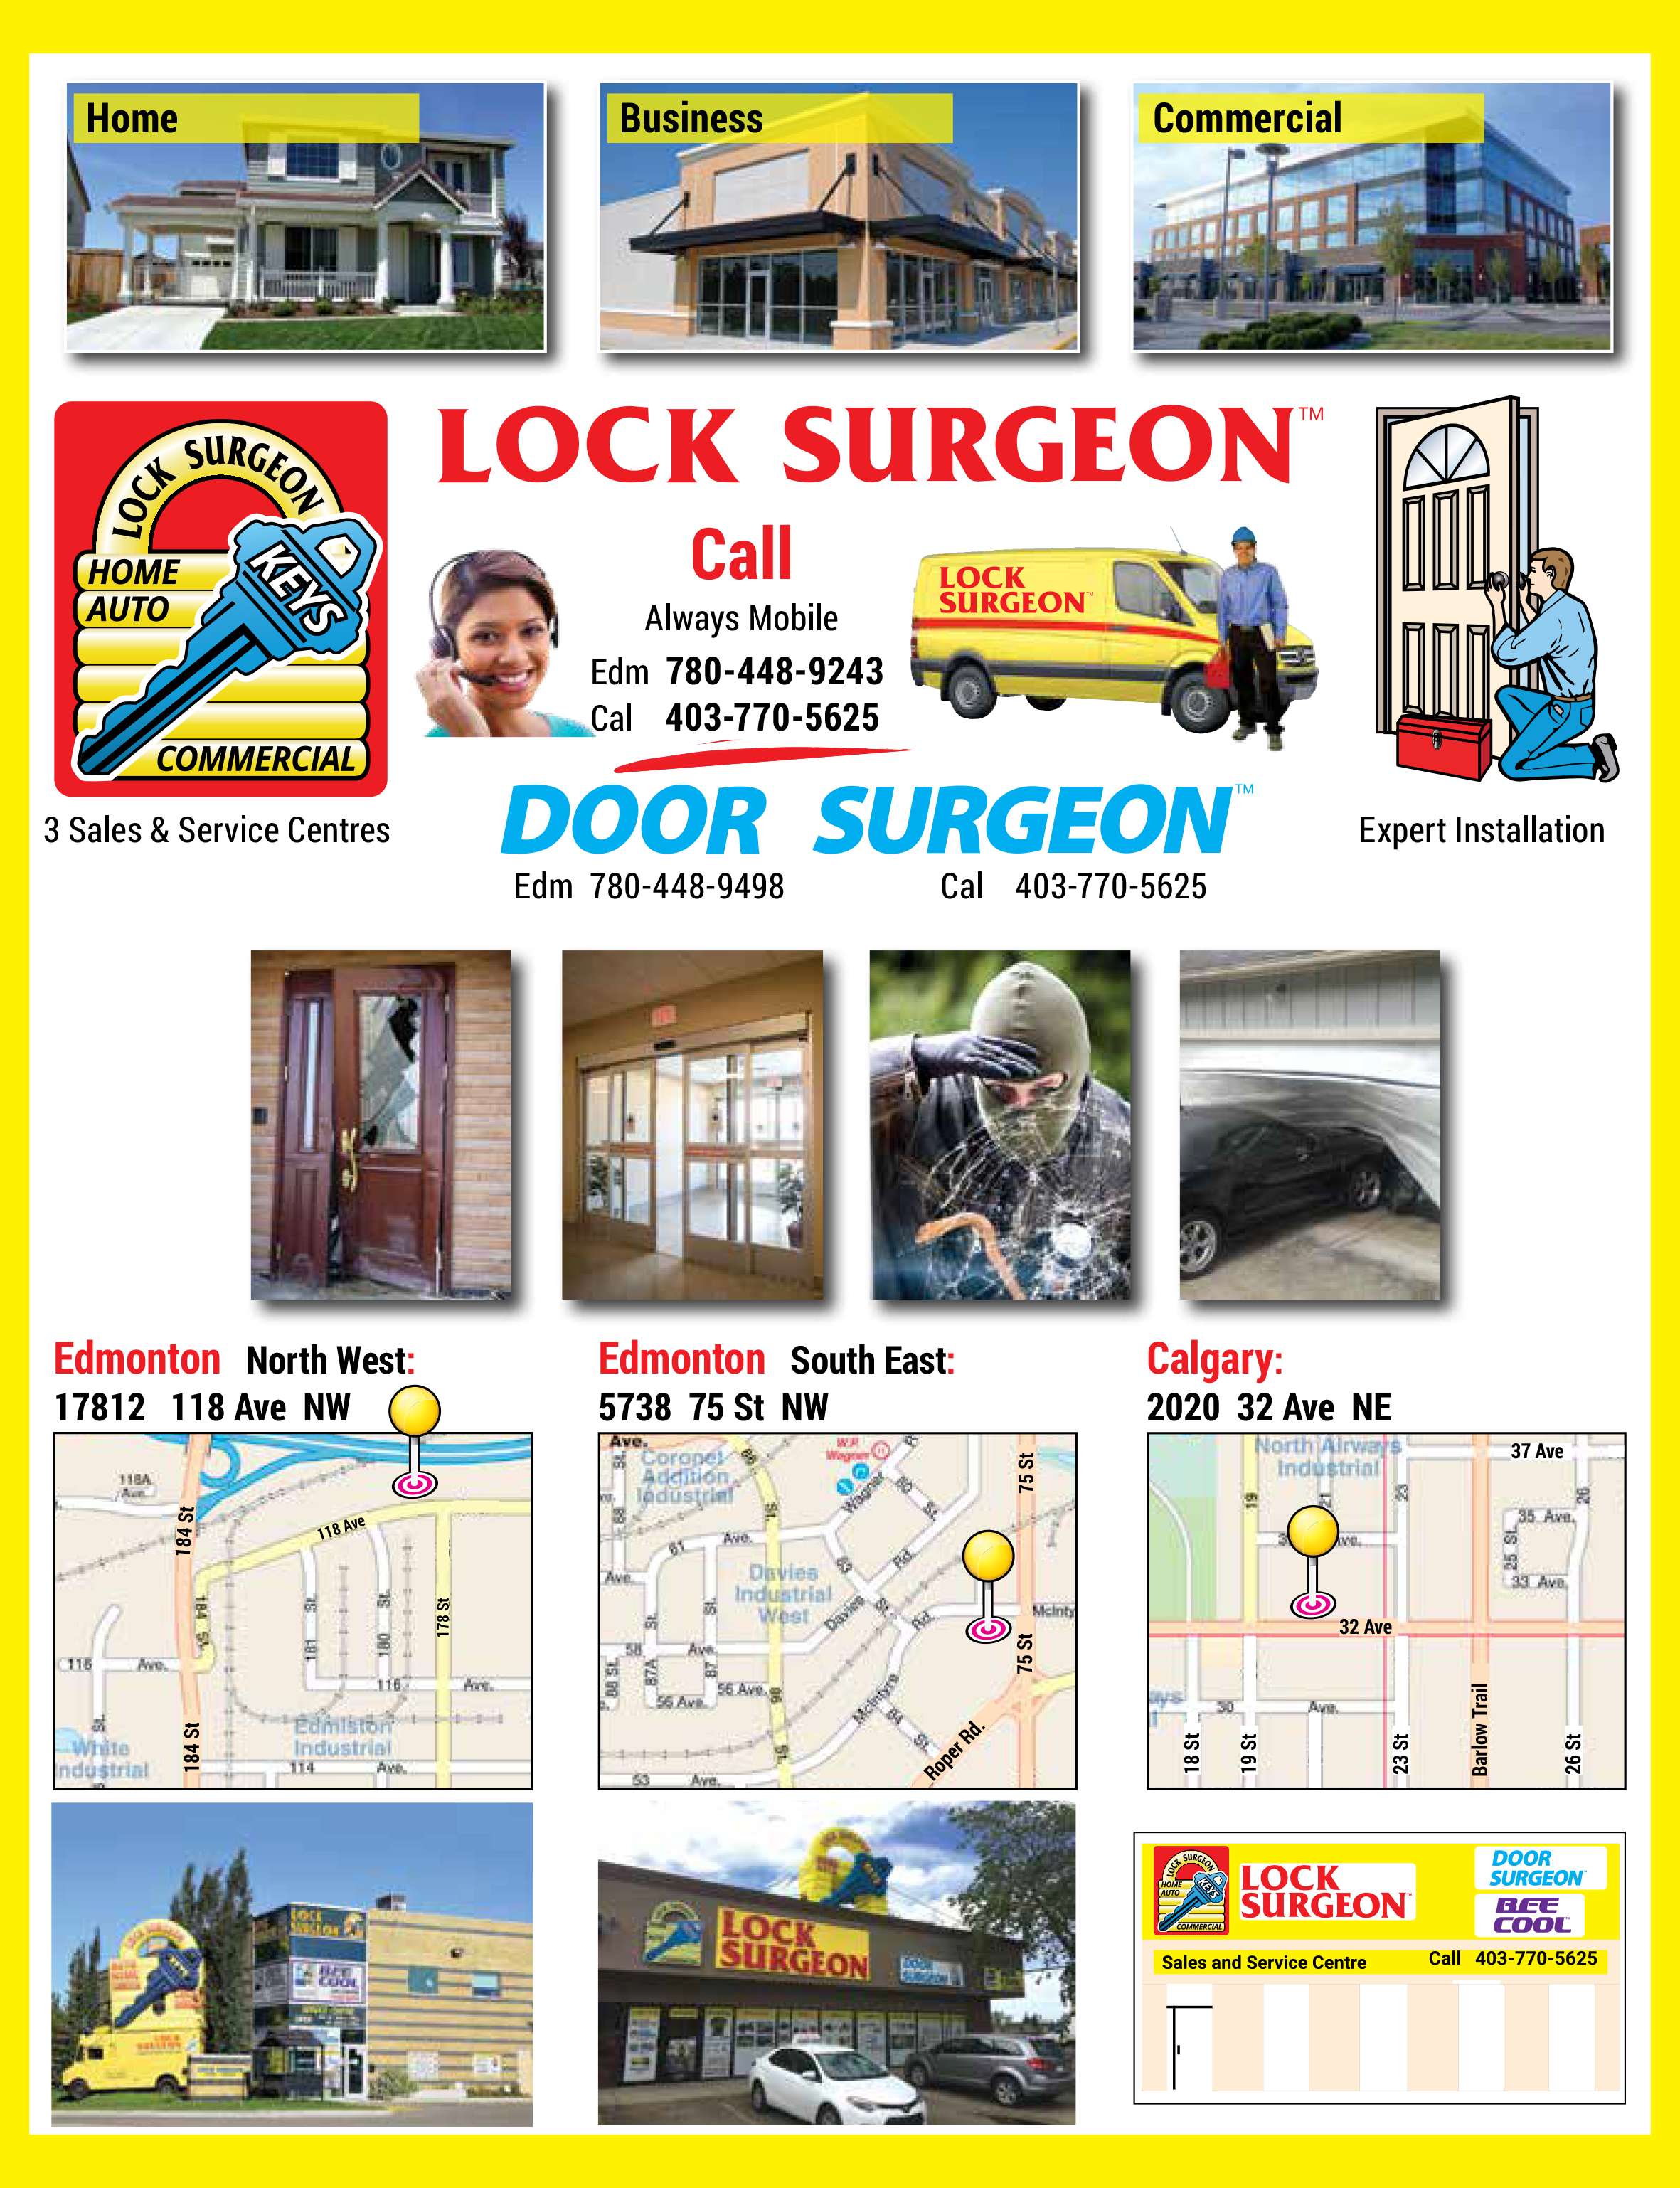 Home lock and door repair, Business Locks and Security Hardware, Commercial Key Systems, Security Keys, Padlock and Key, Home of the Giant Padlock, Door and Hardware Installation and repair, 3 Service Centres, Lock Surgeon, Door Surgeon, Always Mobile, Service Vans, Expert Installation, Edmonton Northwest 17812-118 Ave NW, Edmonton Southeast 5738-75 St NW, Calgary 2020-32 Ave NE